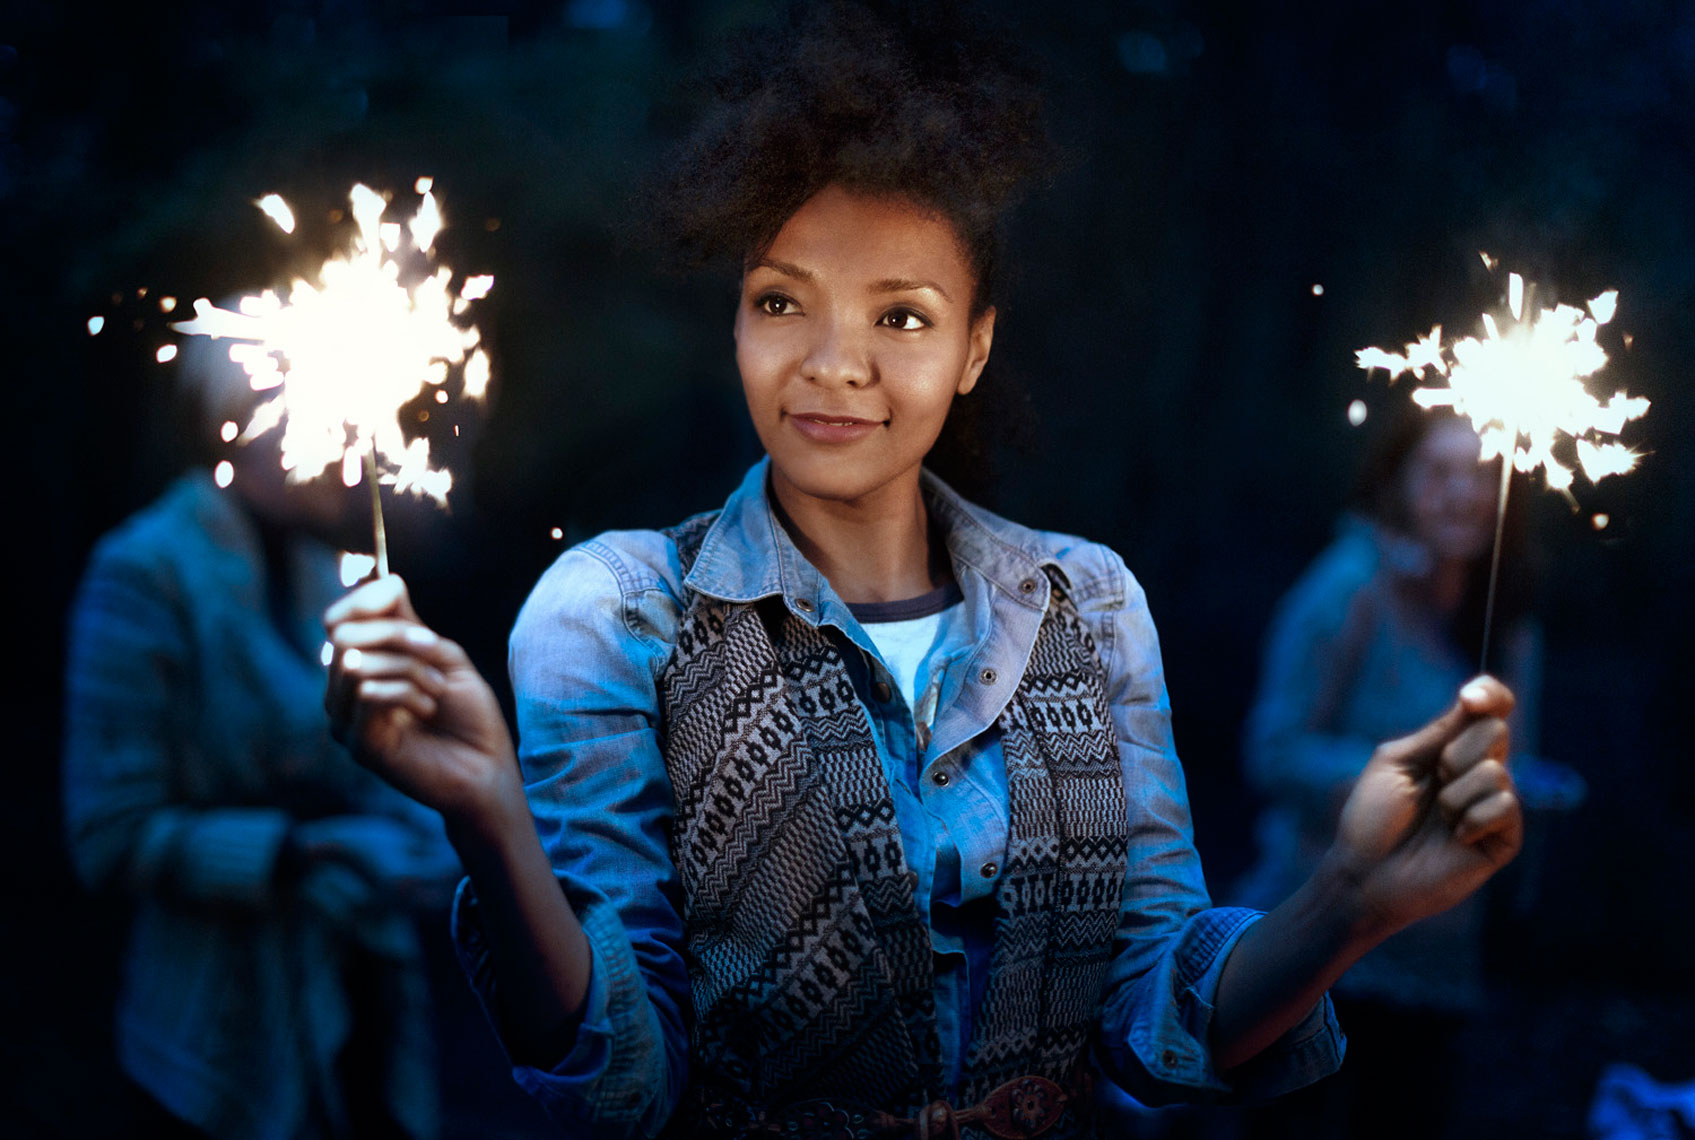 Fall Lifestyle: Young Woman with Sparks: CORBIS